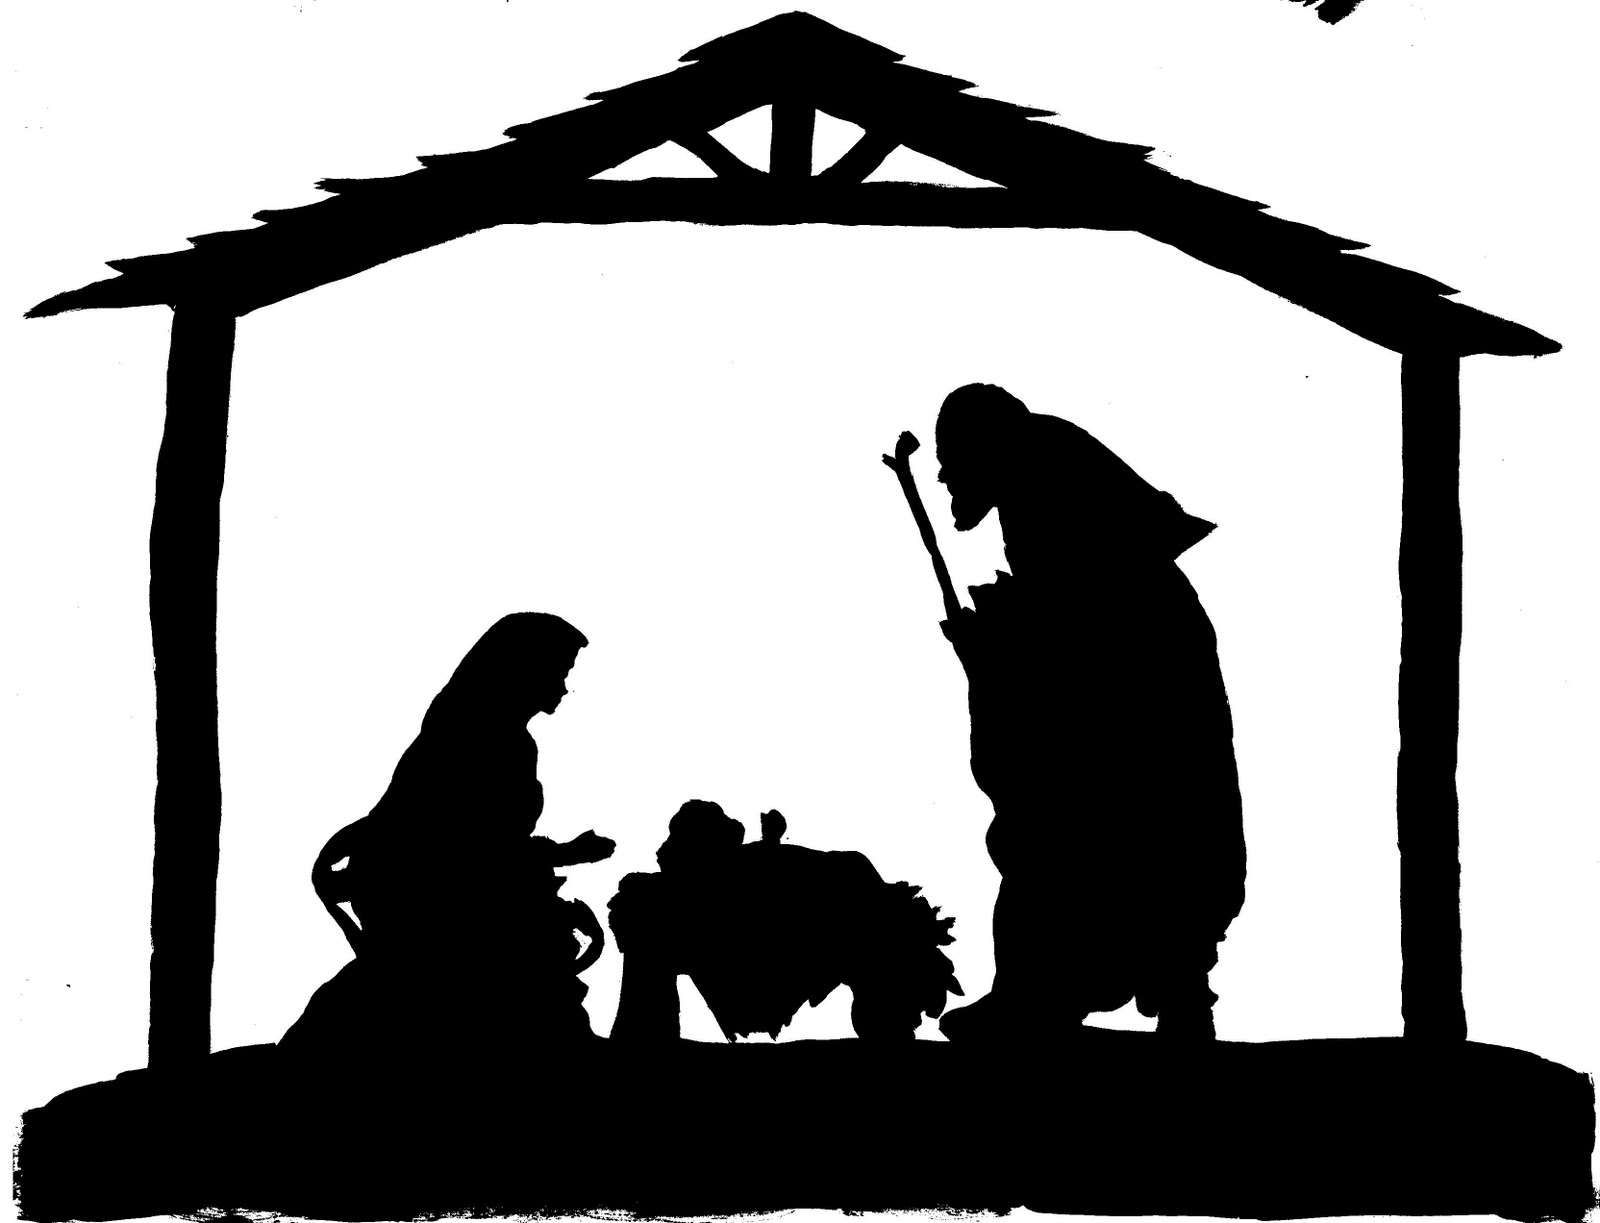 Nativity images free clipart image freeuse library Free Baby Jesus Silhouette, Download Free Clip Art, Free Clip Art on ... image freeuse library